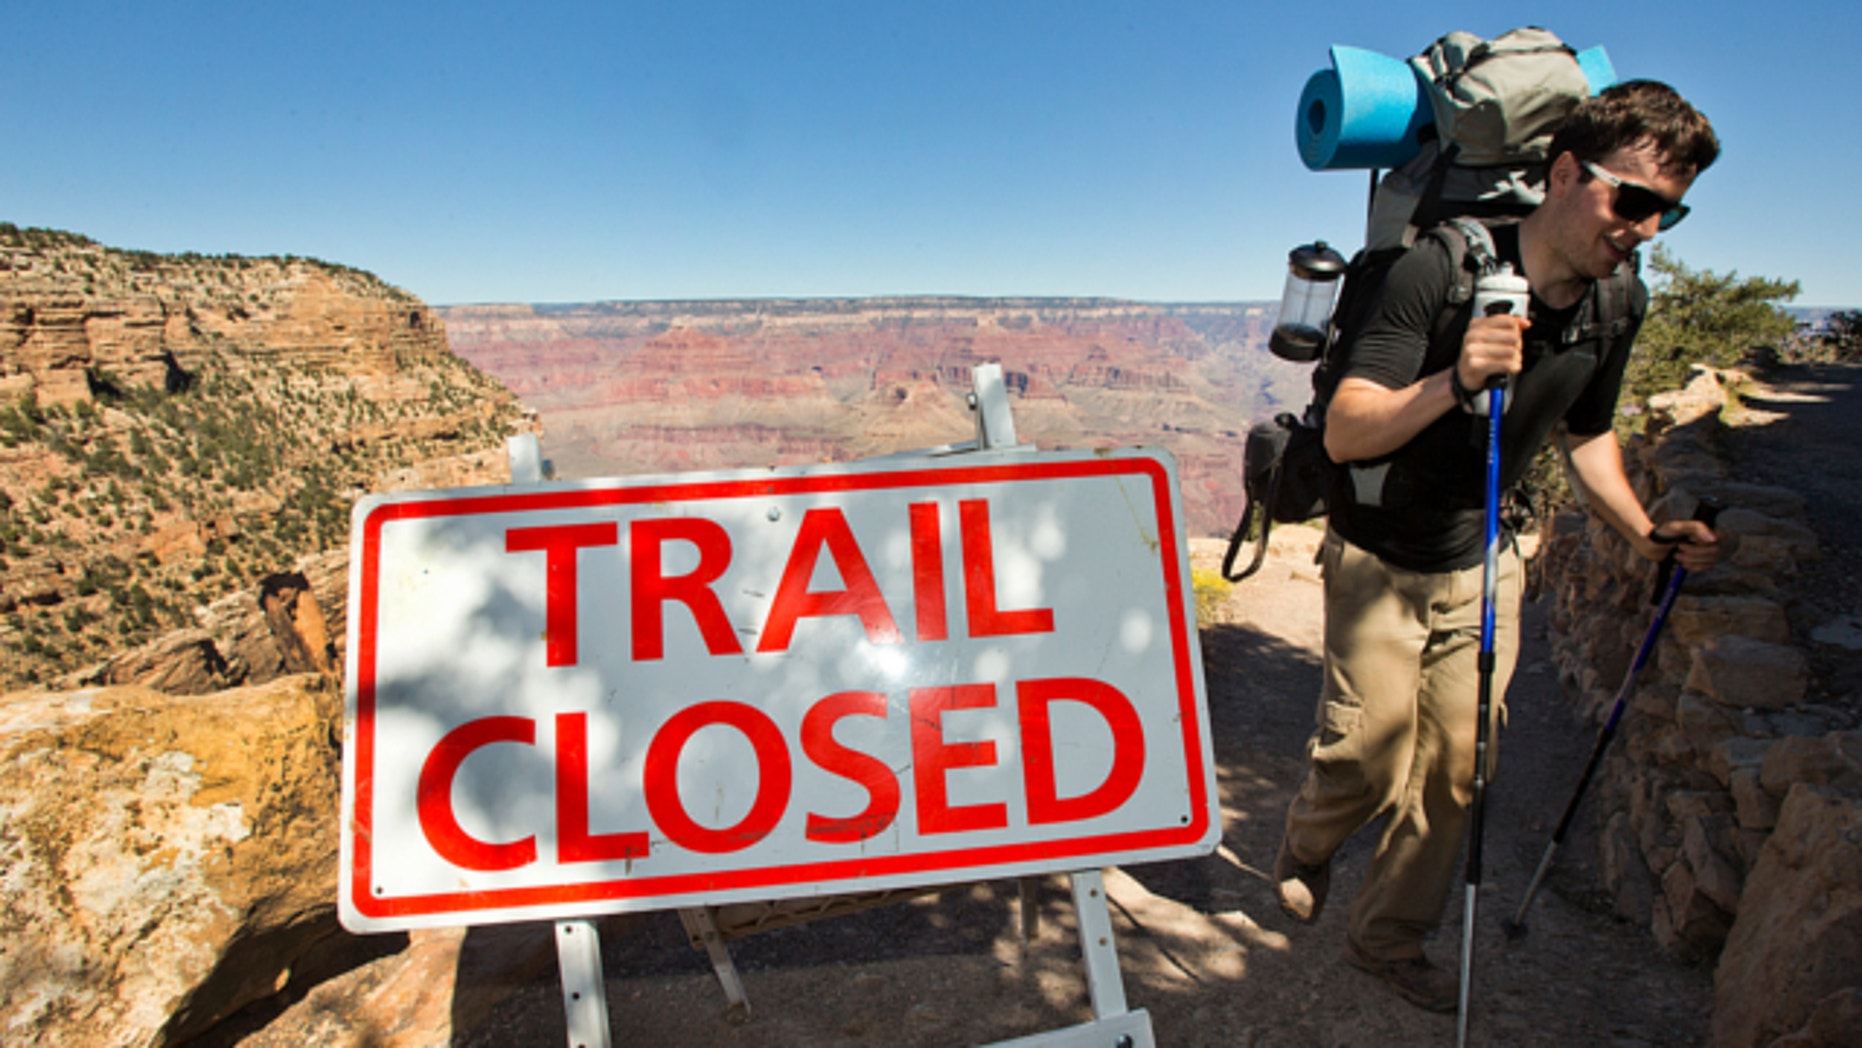 Oct. 1, 2013: Sebastian Ramirez, 27, of Austin, Texas, hikes out of the Bright Angel Trail in Grand Canyon National Park.